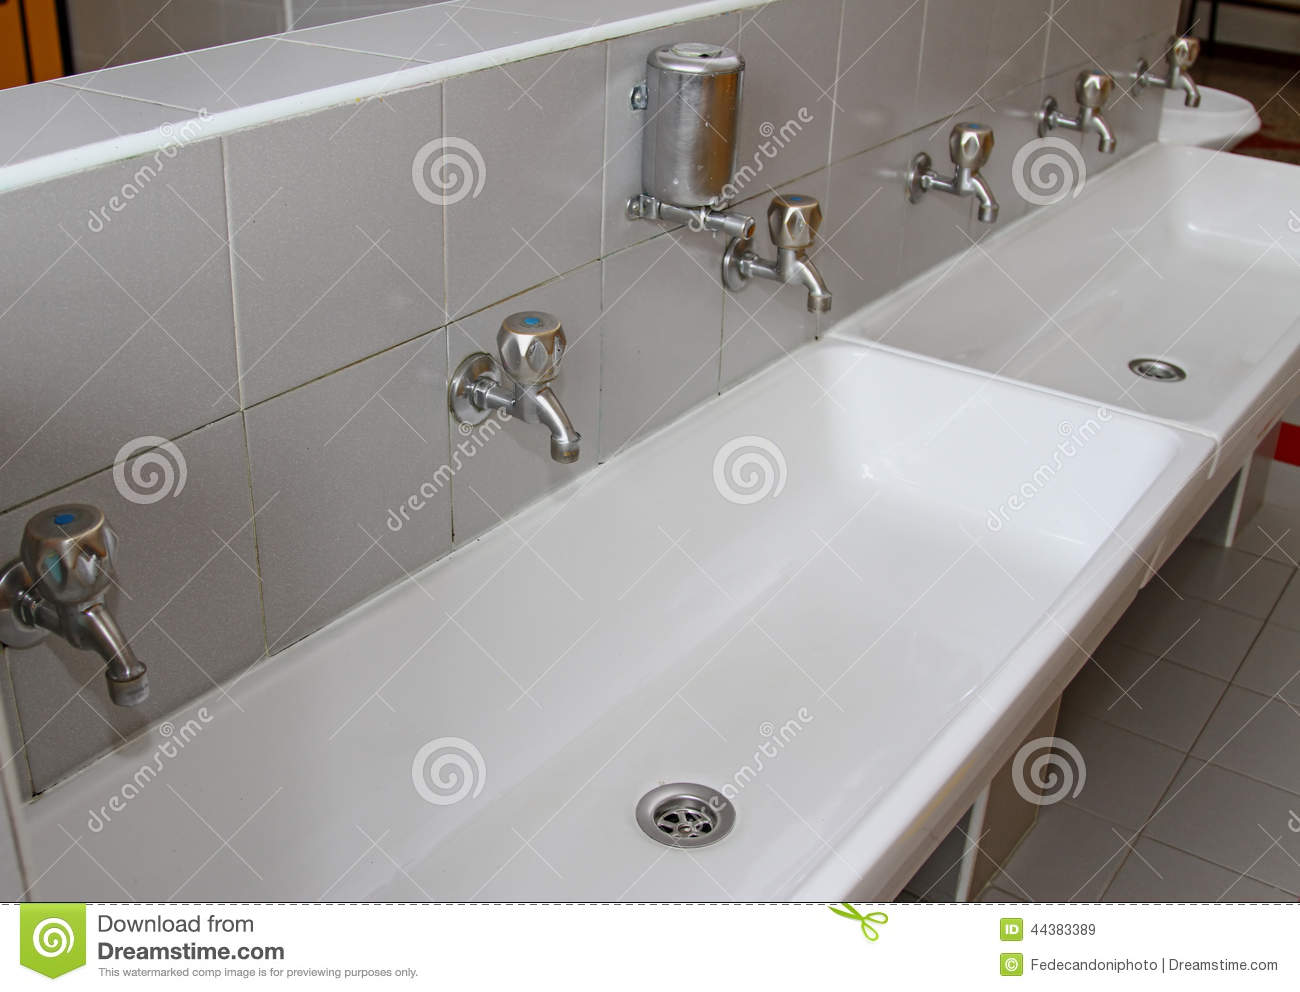 preschool bathroom sink. Download Sinks And Washbasins With Taps In The Toilets Of A Nursery Stock  Image - Preschool Bathroom Sink K